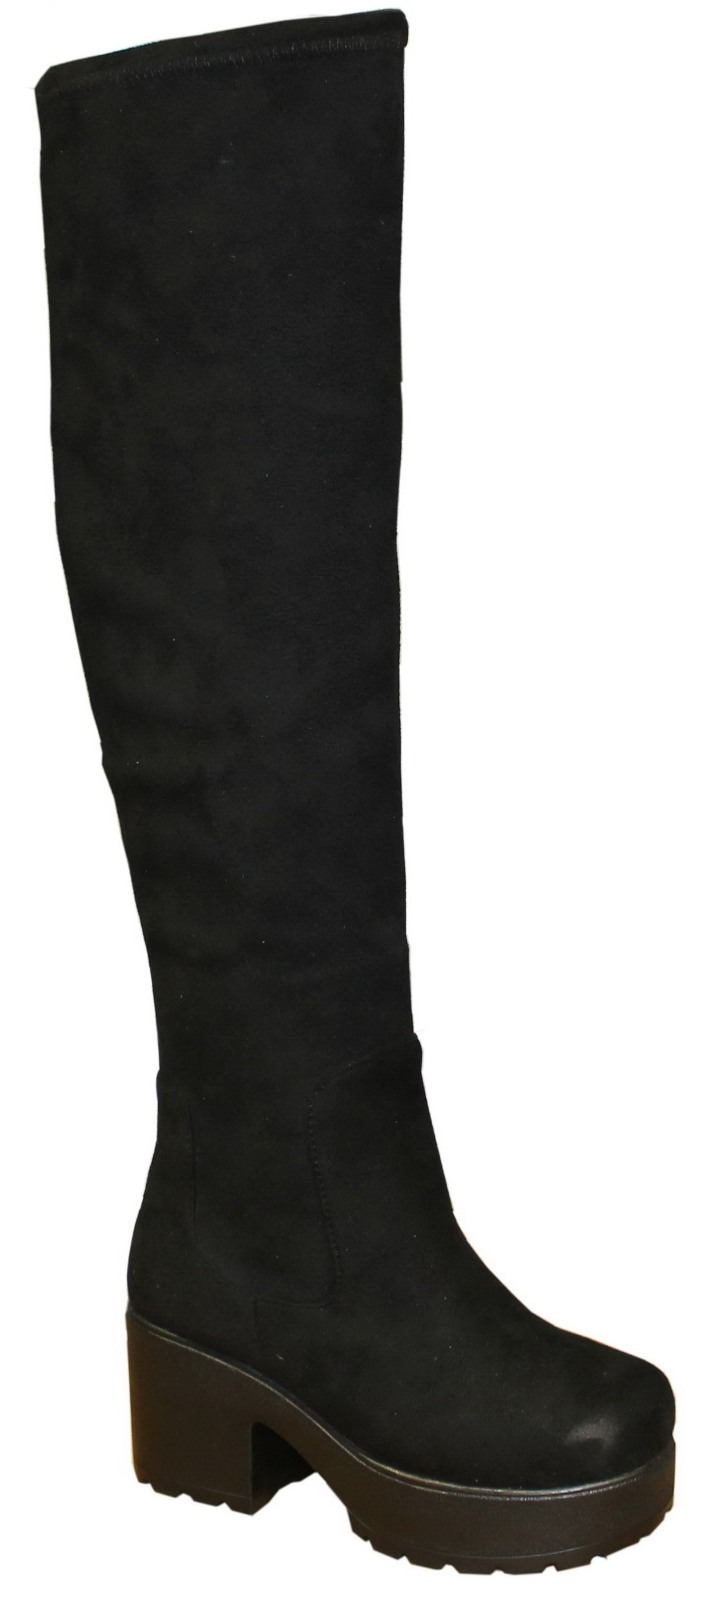 childrens thigh high boots wholesale